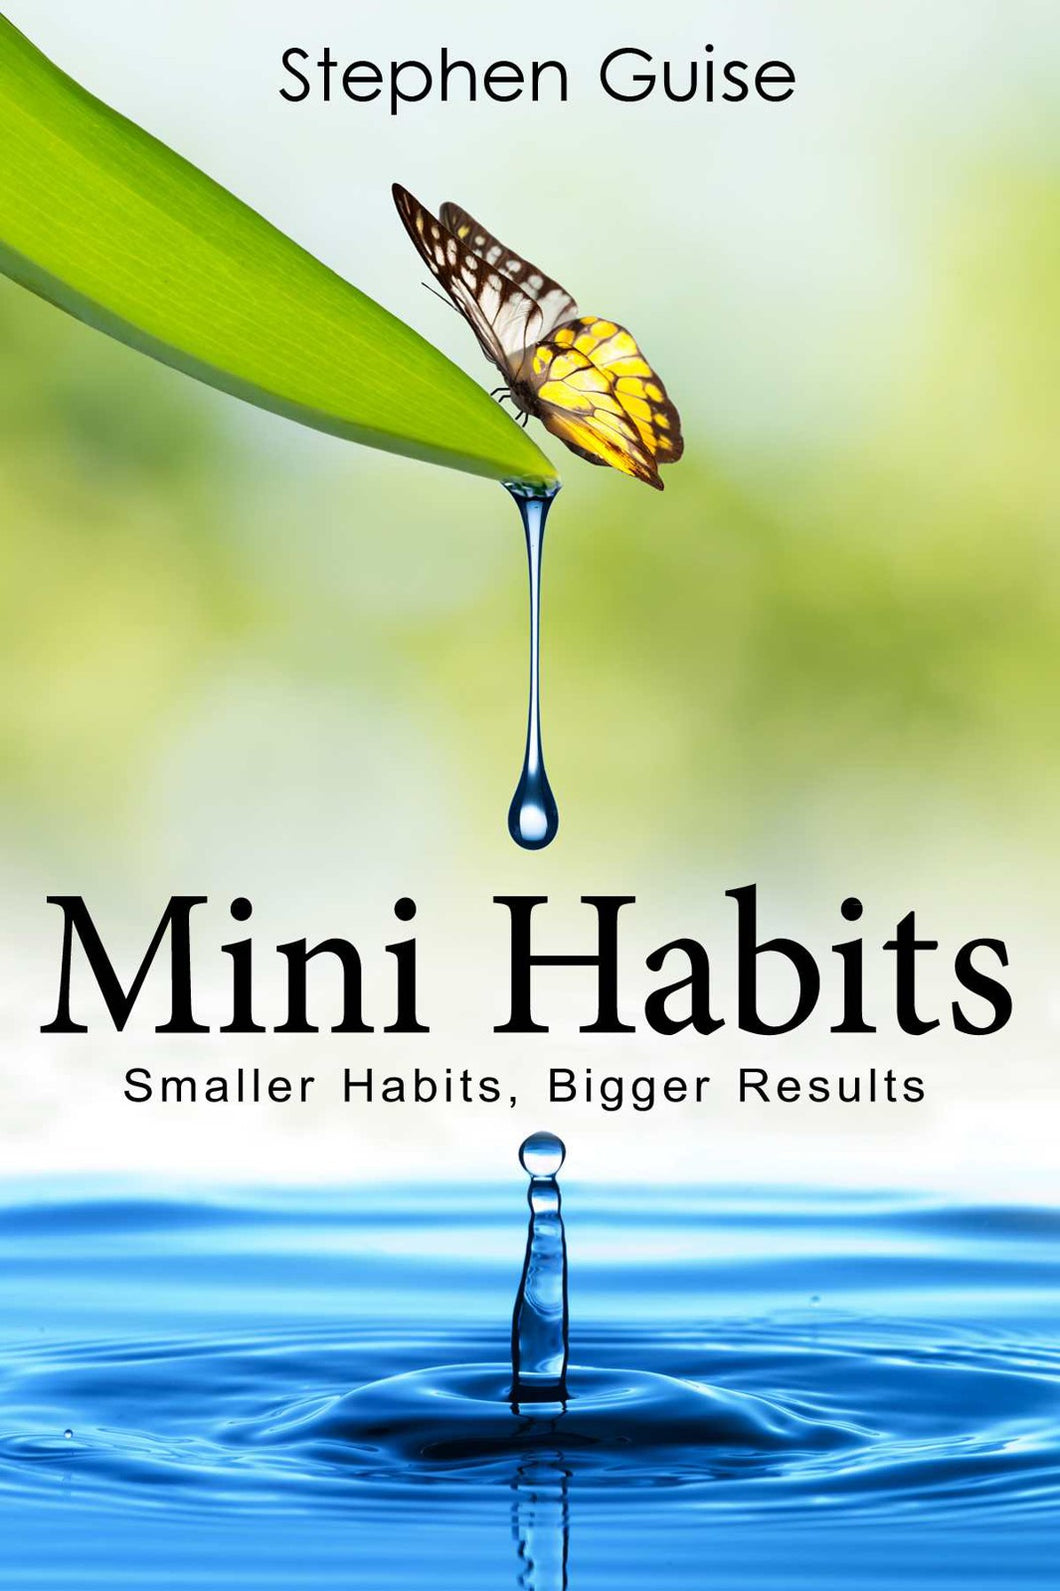 Mini Habits: Smaller Habits, Bigger Results by Stephen Guise - eBook, ePub, Mobi, PDF (Fast instant delivery)